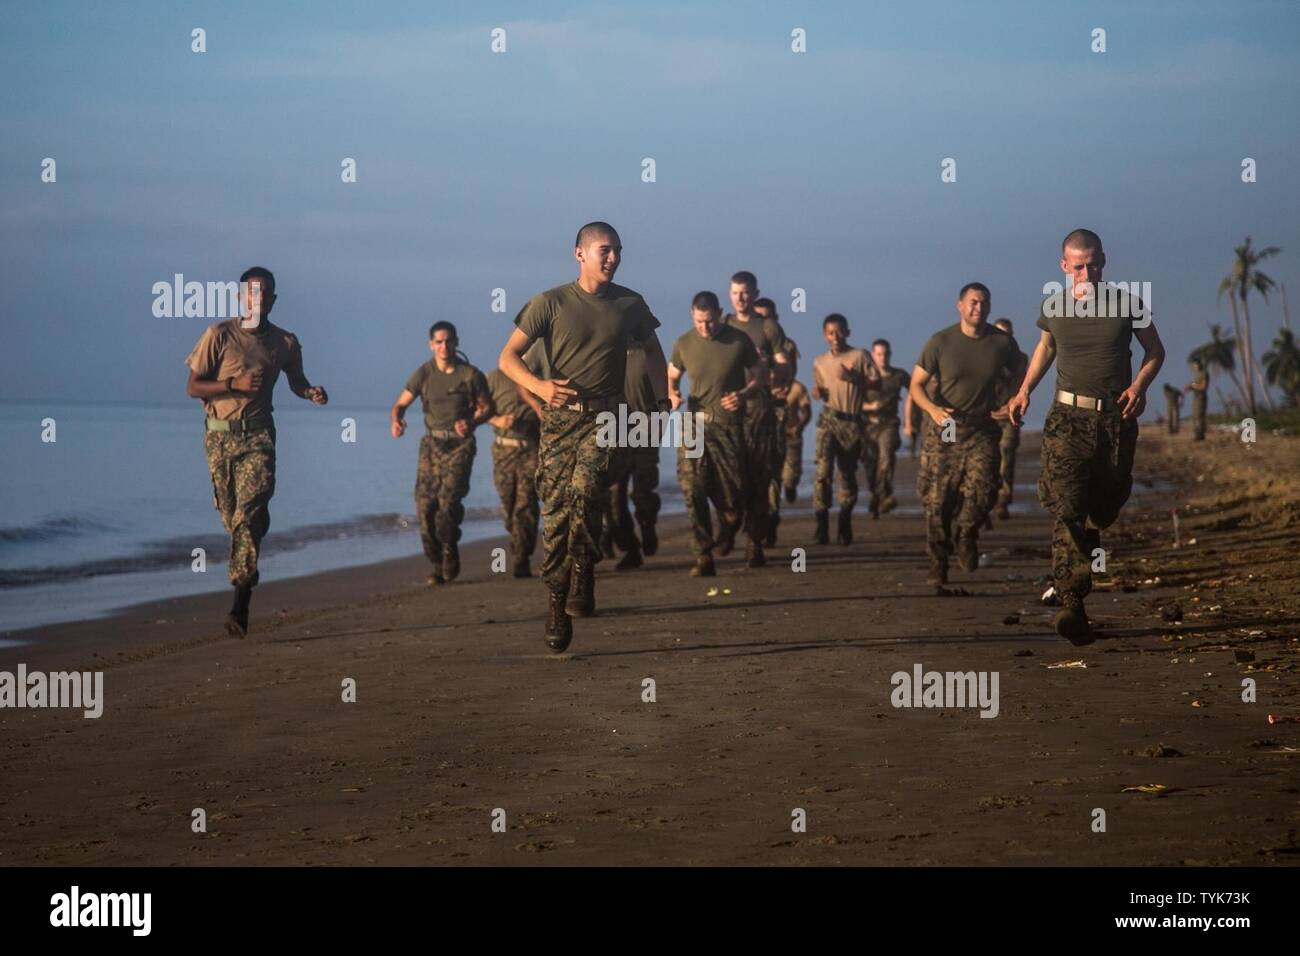 7th Battalion Stock Photos & 7th Battalion Stock Images - Alamy